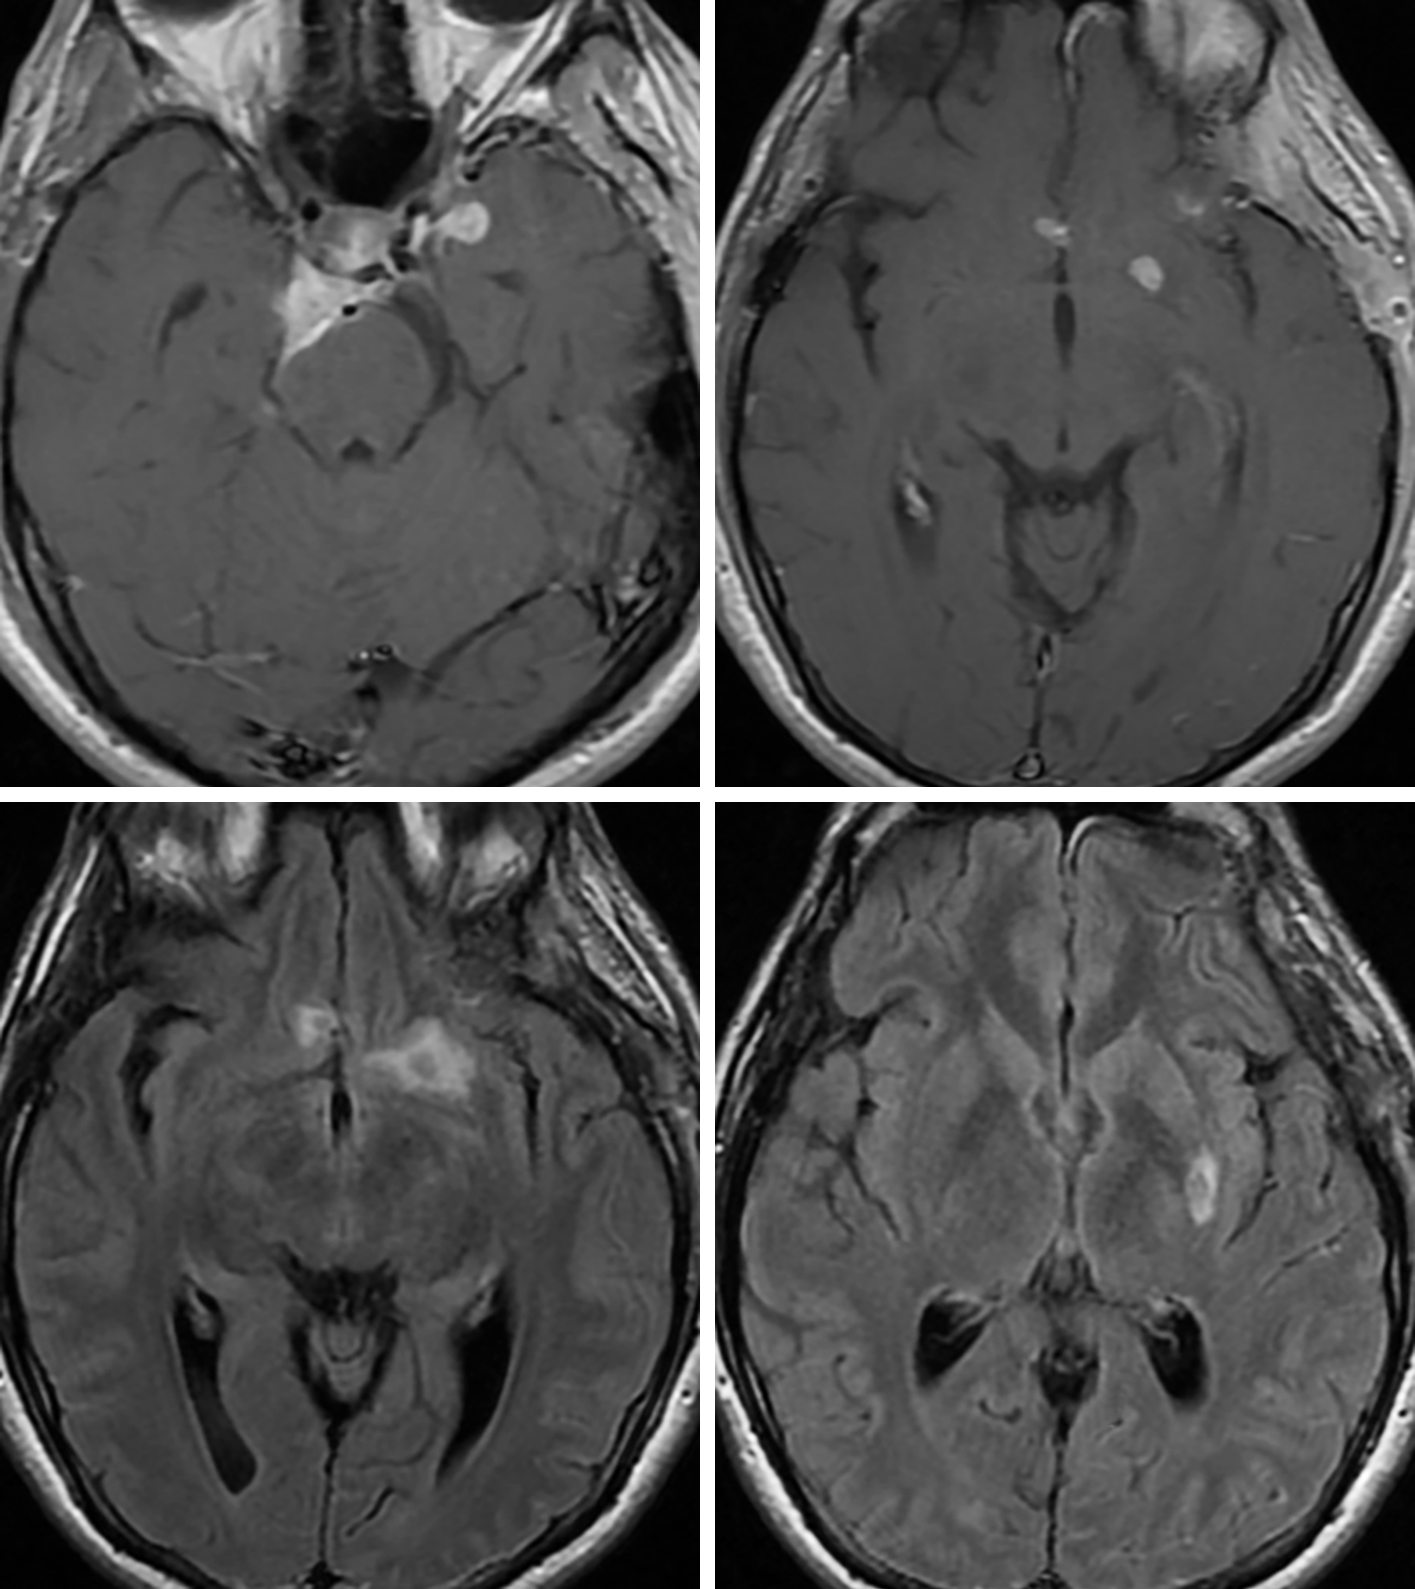 Figure 3: Axial T1-weighted postcontrast images demonstrating prepontine cistern and medial left temporal enhancing coccidiomycosis involvement (top left) and enhancing infectious tissue along the medial anterior left lobe, in the right posterior orbital gyrus and in the left basal ganglia (top right), which can also be seen in dura-based and parenchymal metastatic disease. The parenchymal lesions also demonstrate nonspecific surrounding FLAIR hyperintense edema (bottom left and bottom right) that would also be typical of parenchymal metastatic disease.